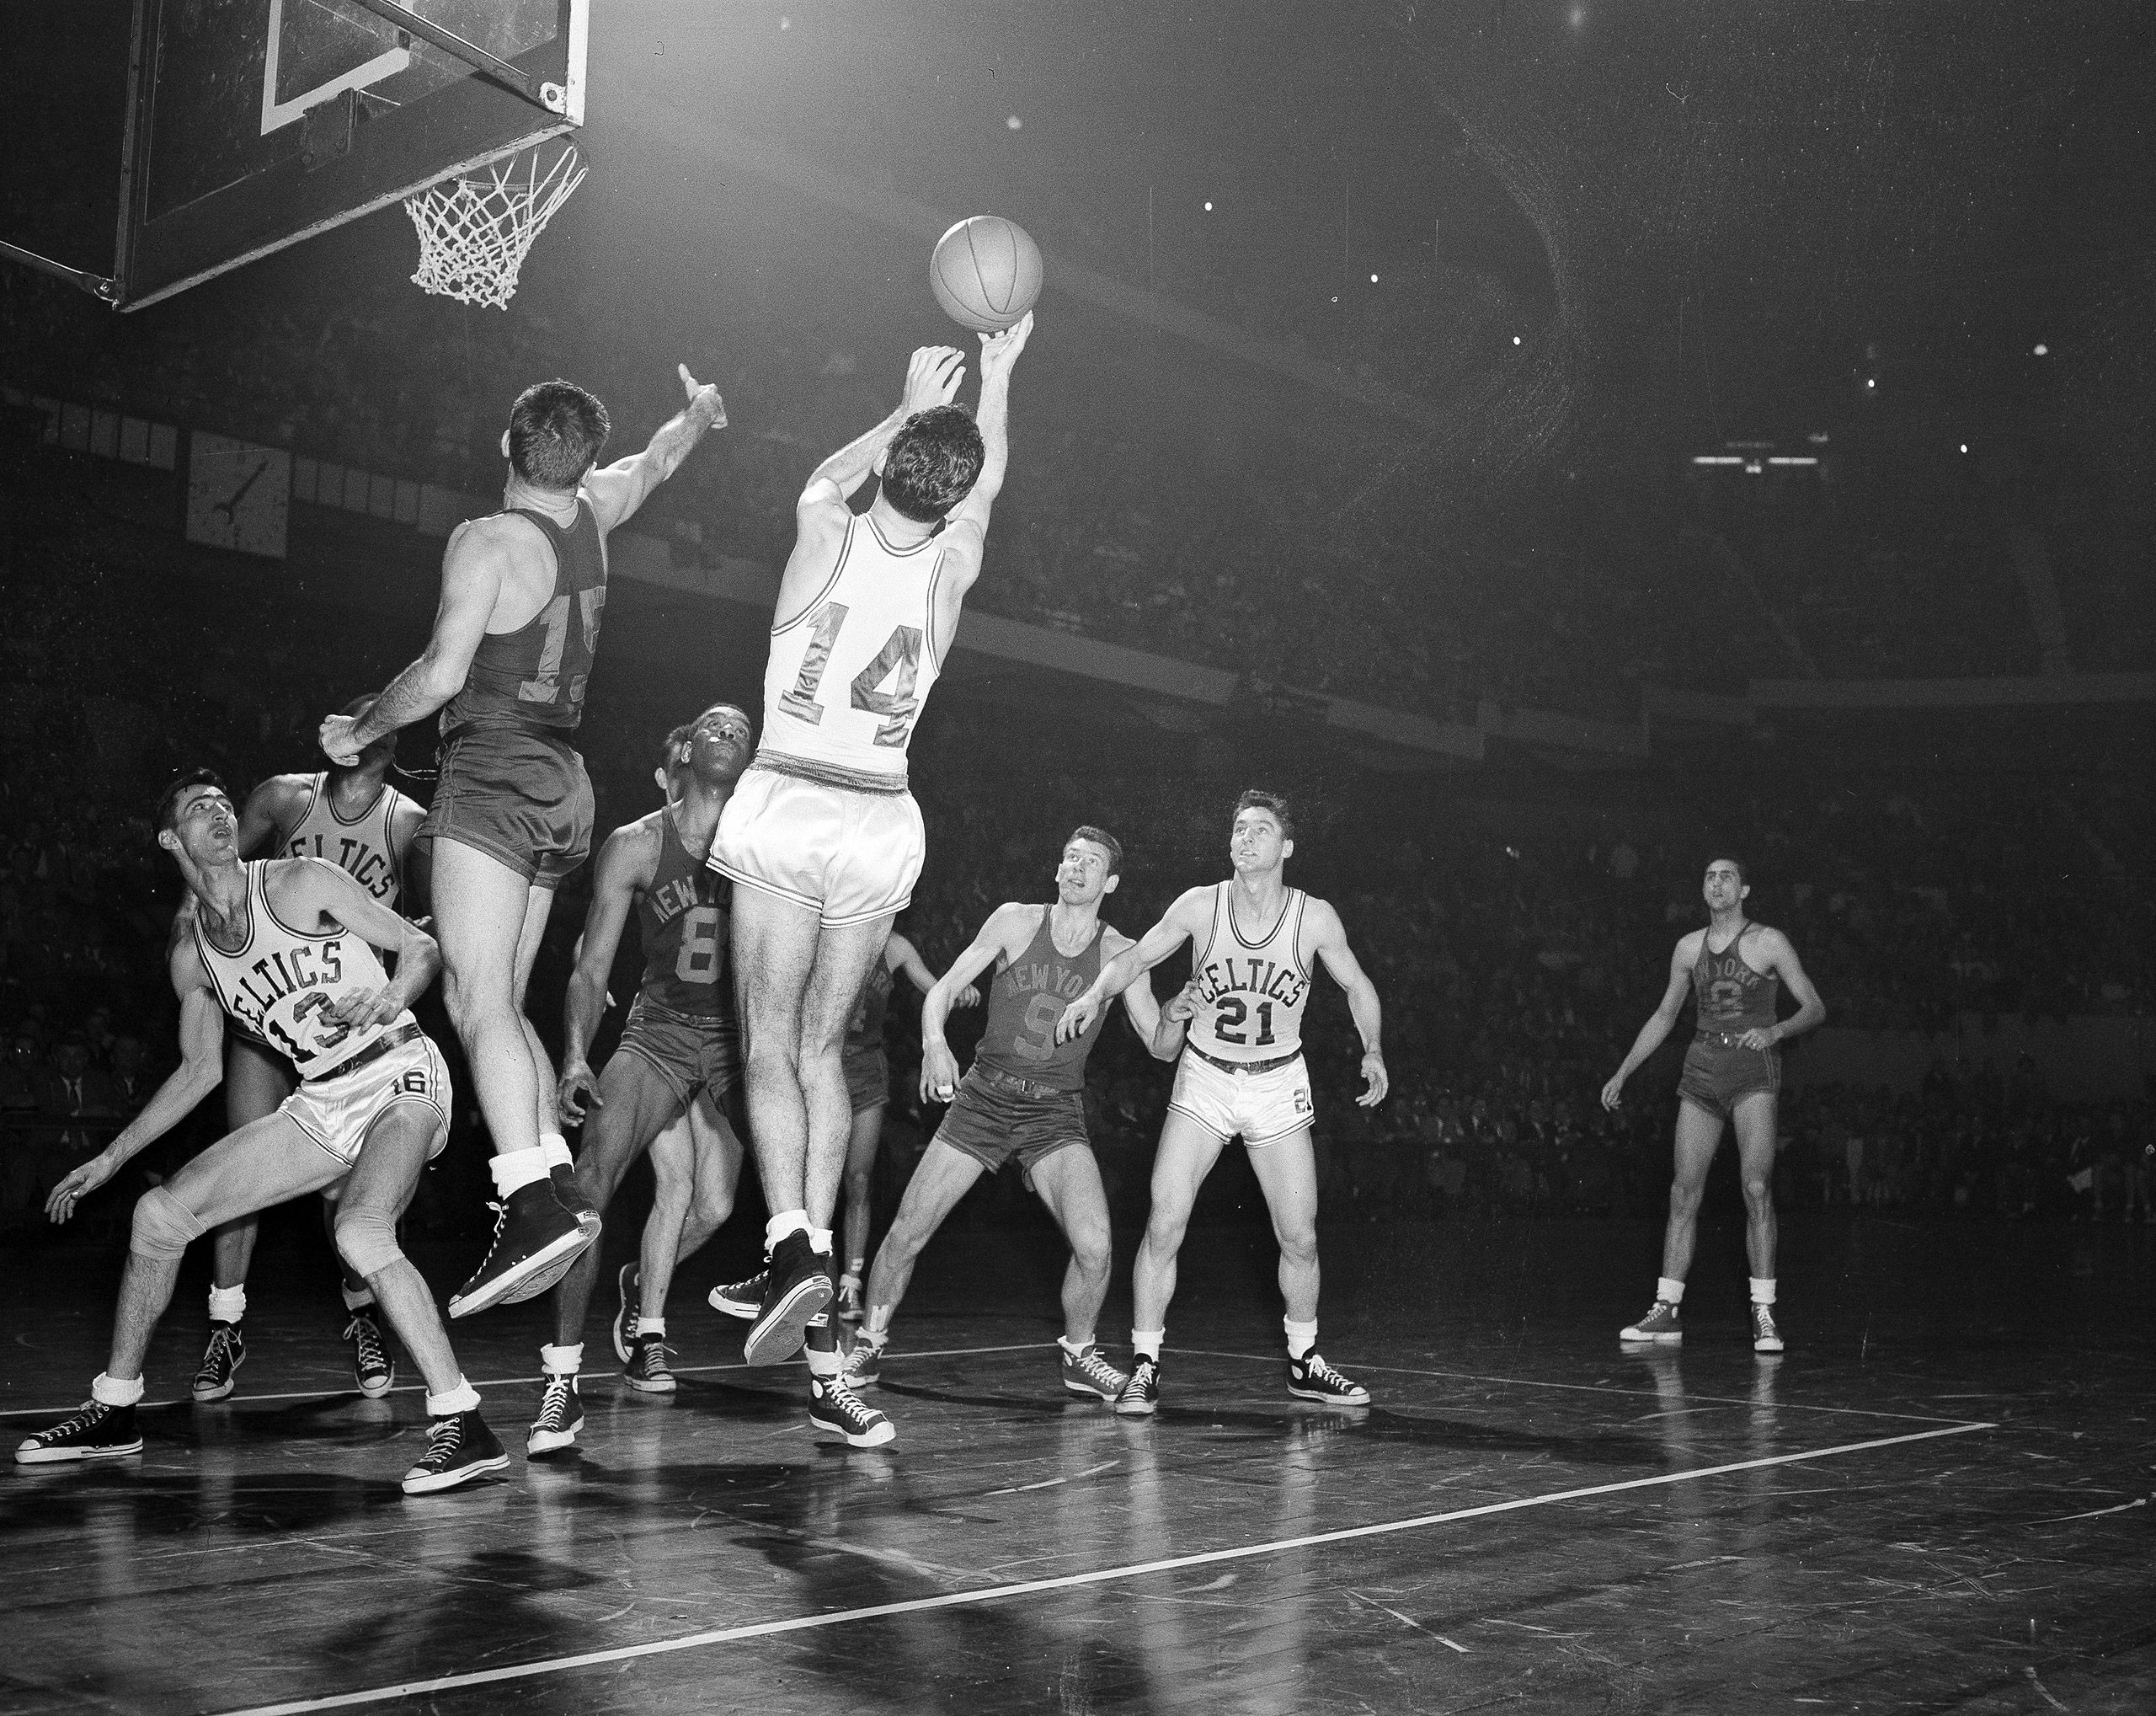 Bob Cousy (14) of the Boston Celtics takes a rebound off the backboard after an attempted basket by Dick McGuire (15) of the New York Knickerbockers in the fourth quarter of their NBA playoff game at the Boston Garden in Boston, March 26, 1953.